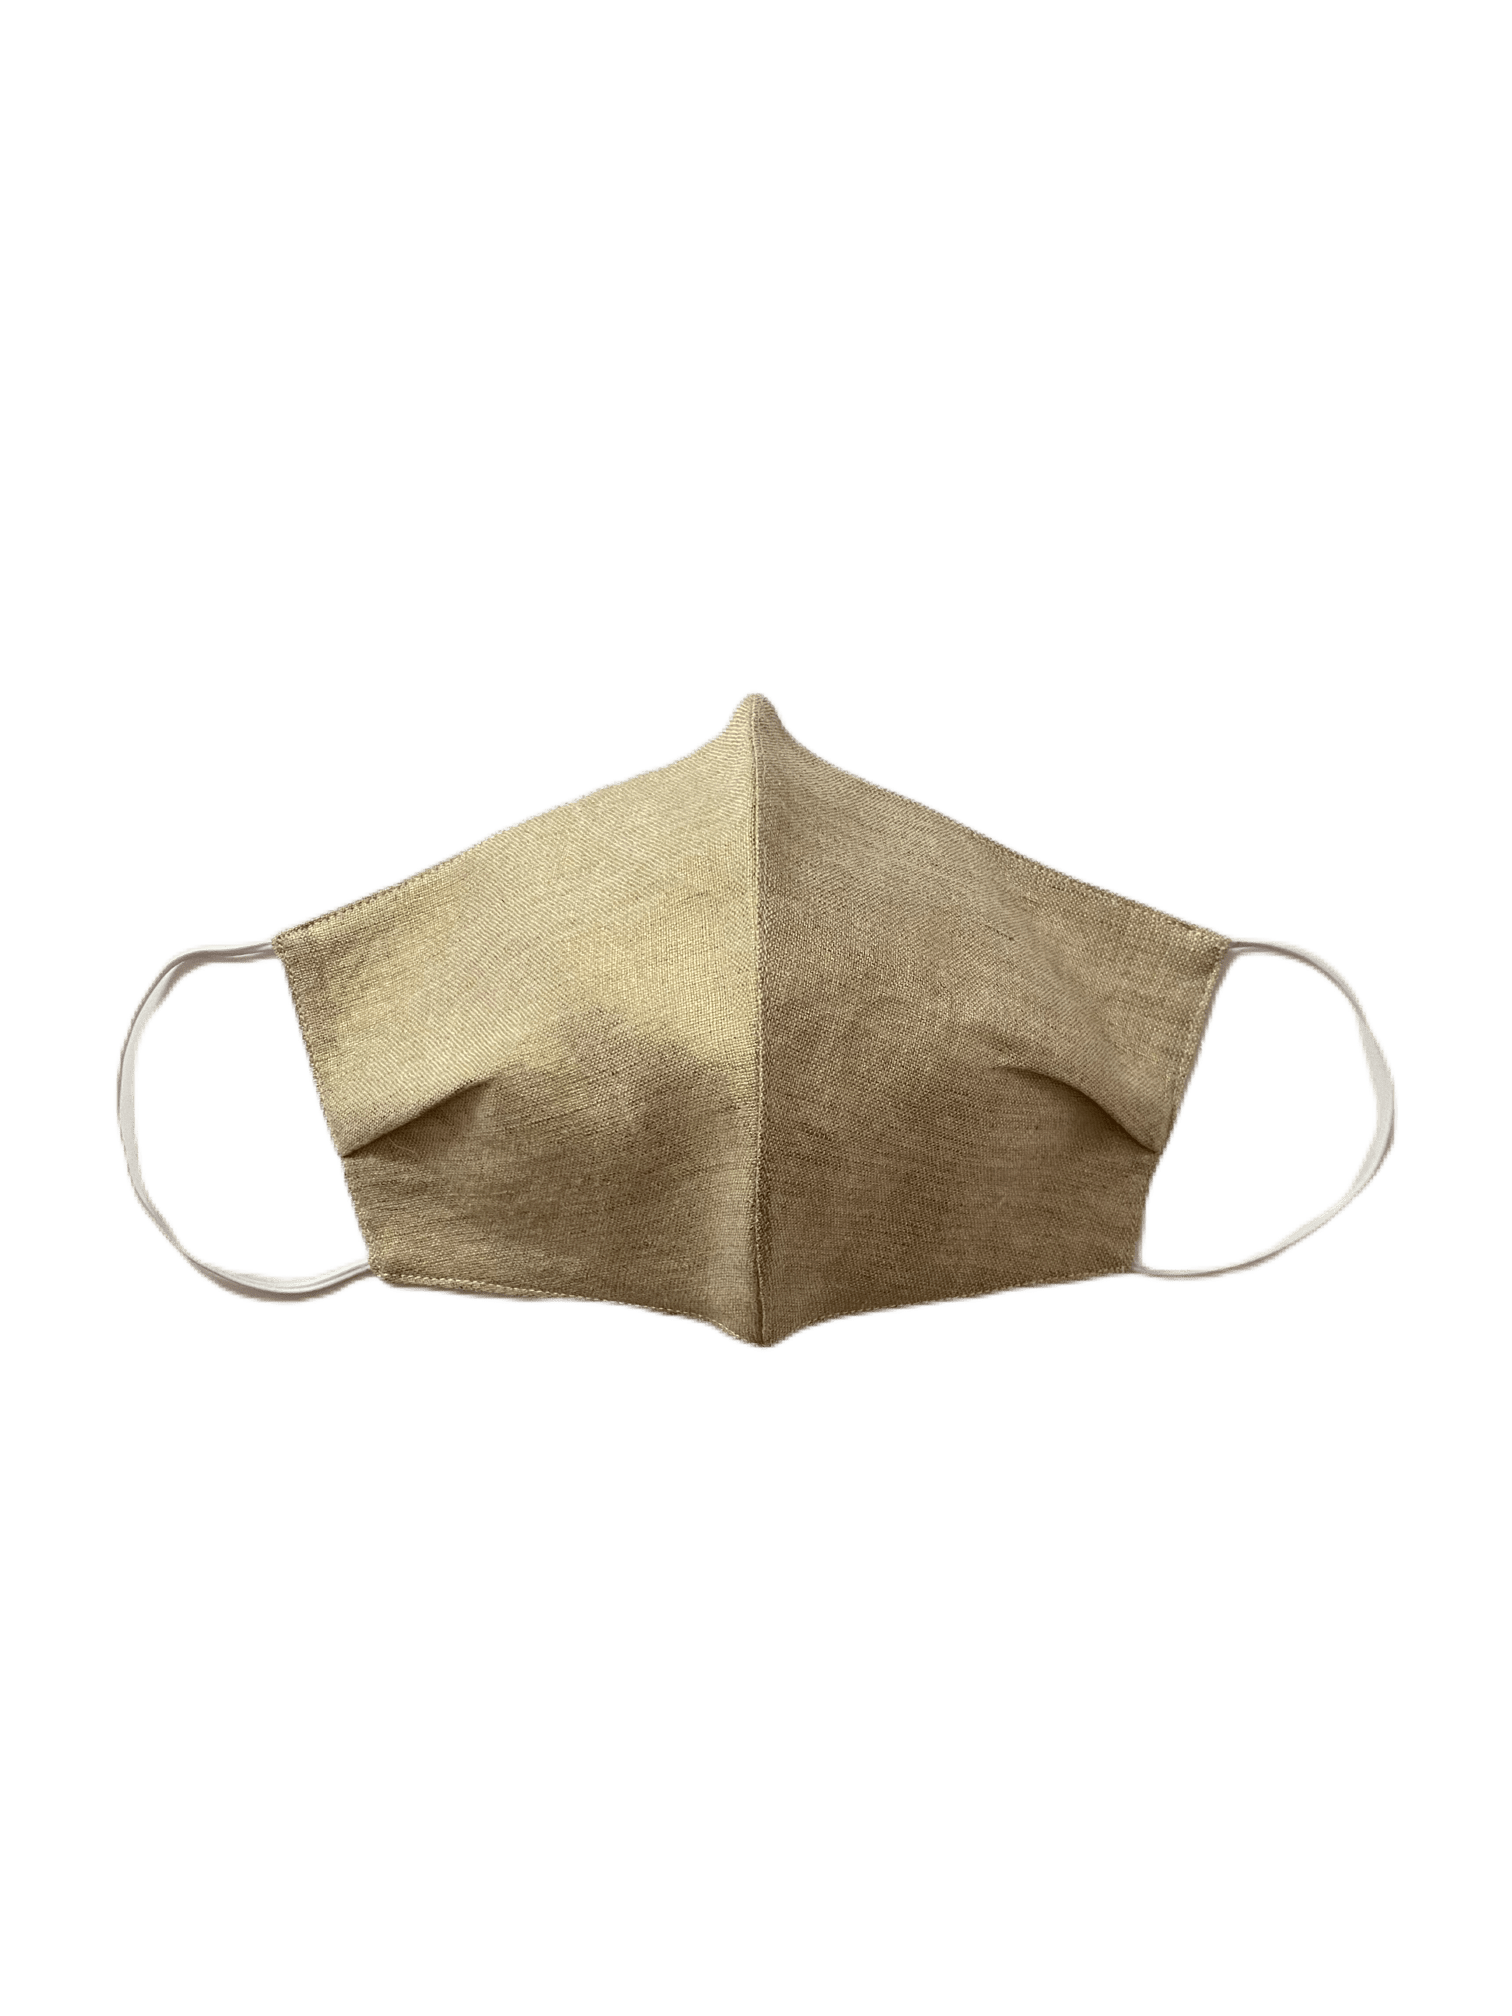 Linen & Rayon Fabric Face Masks with Filter Pocket